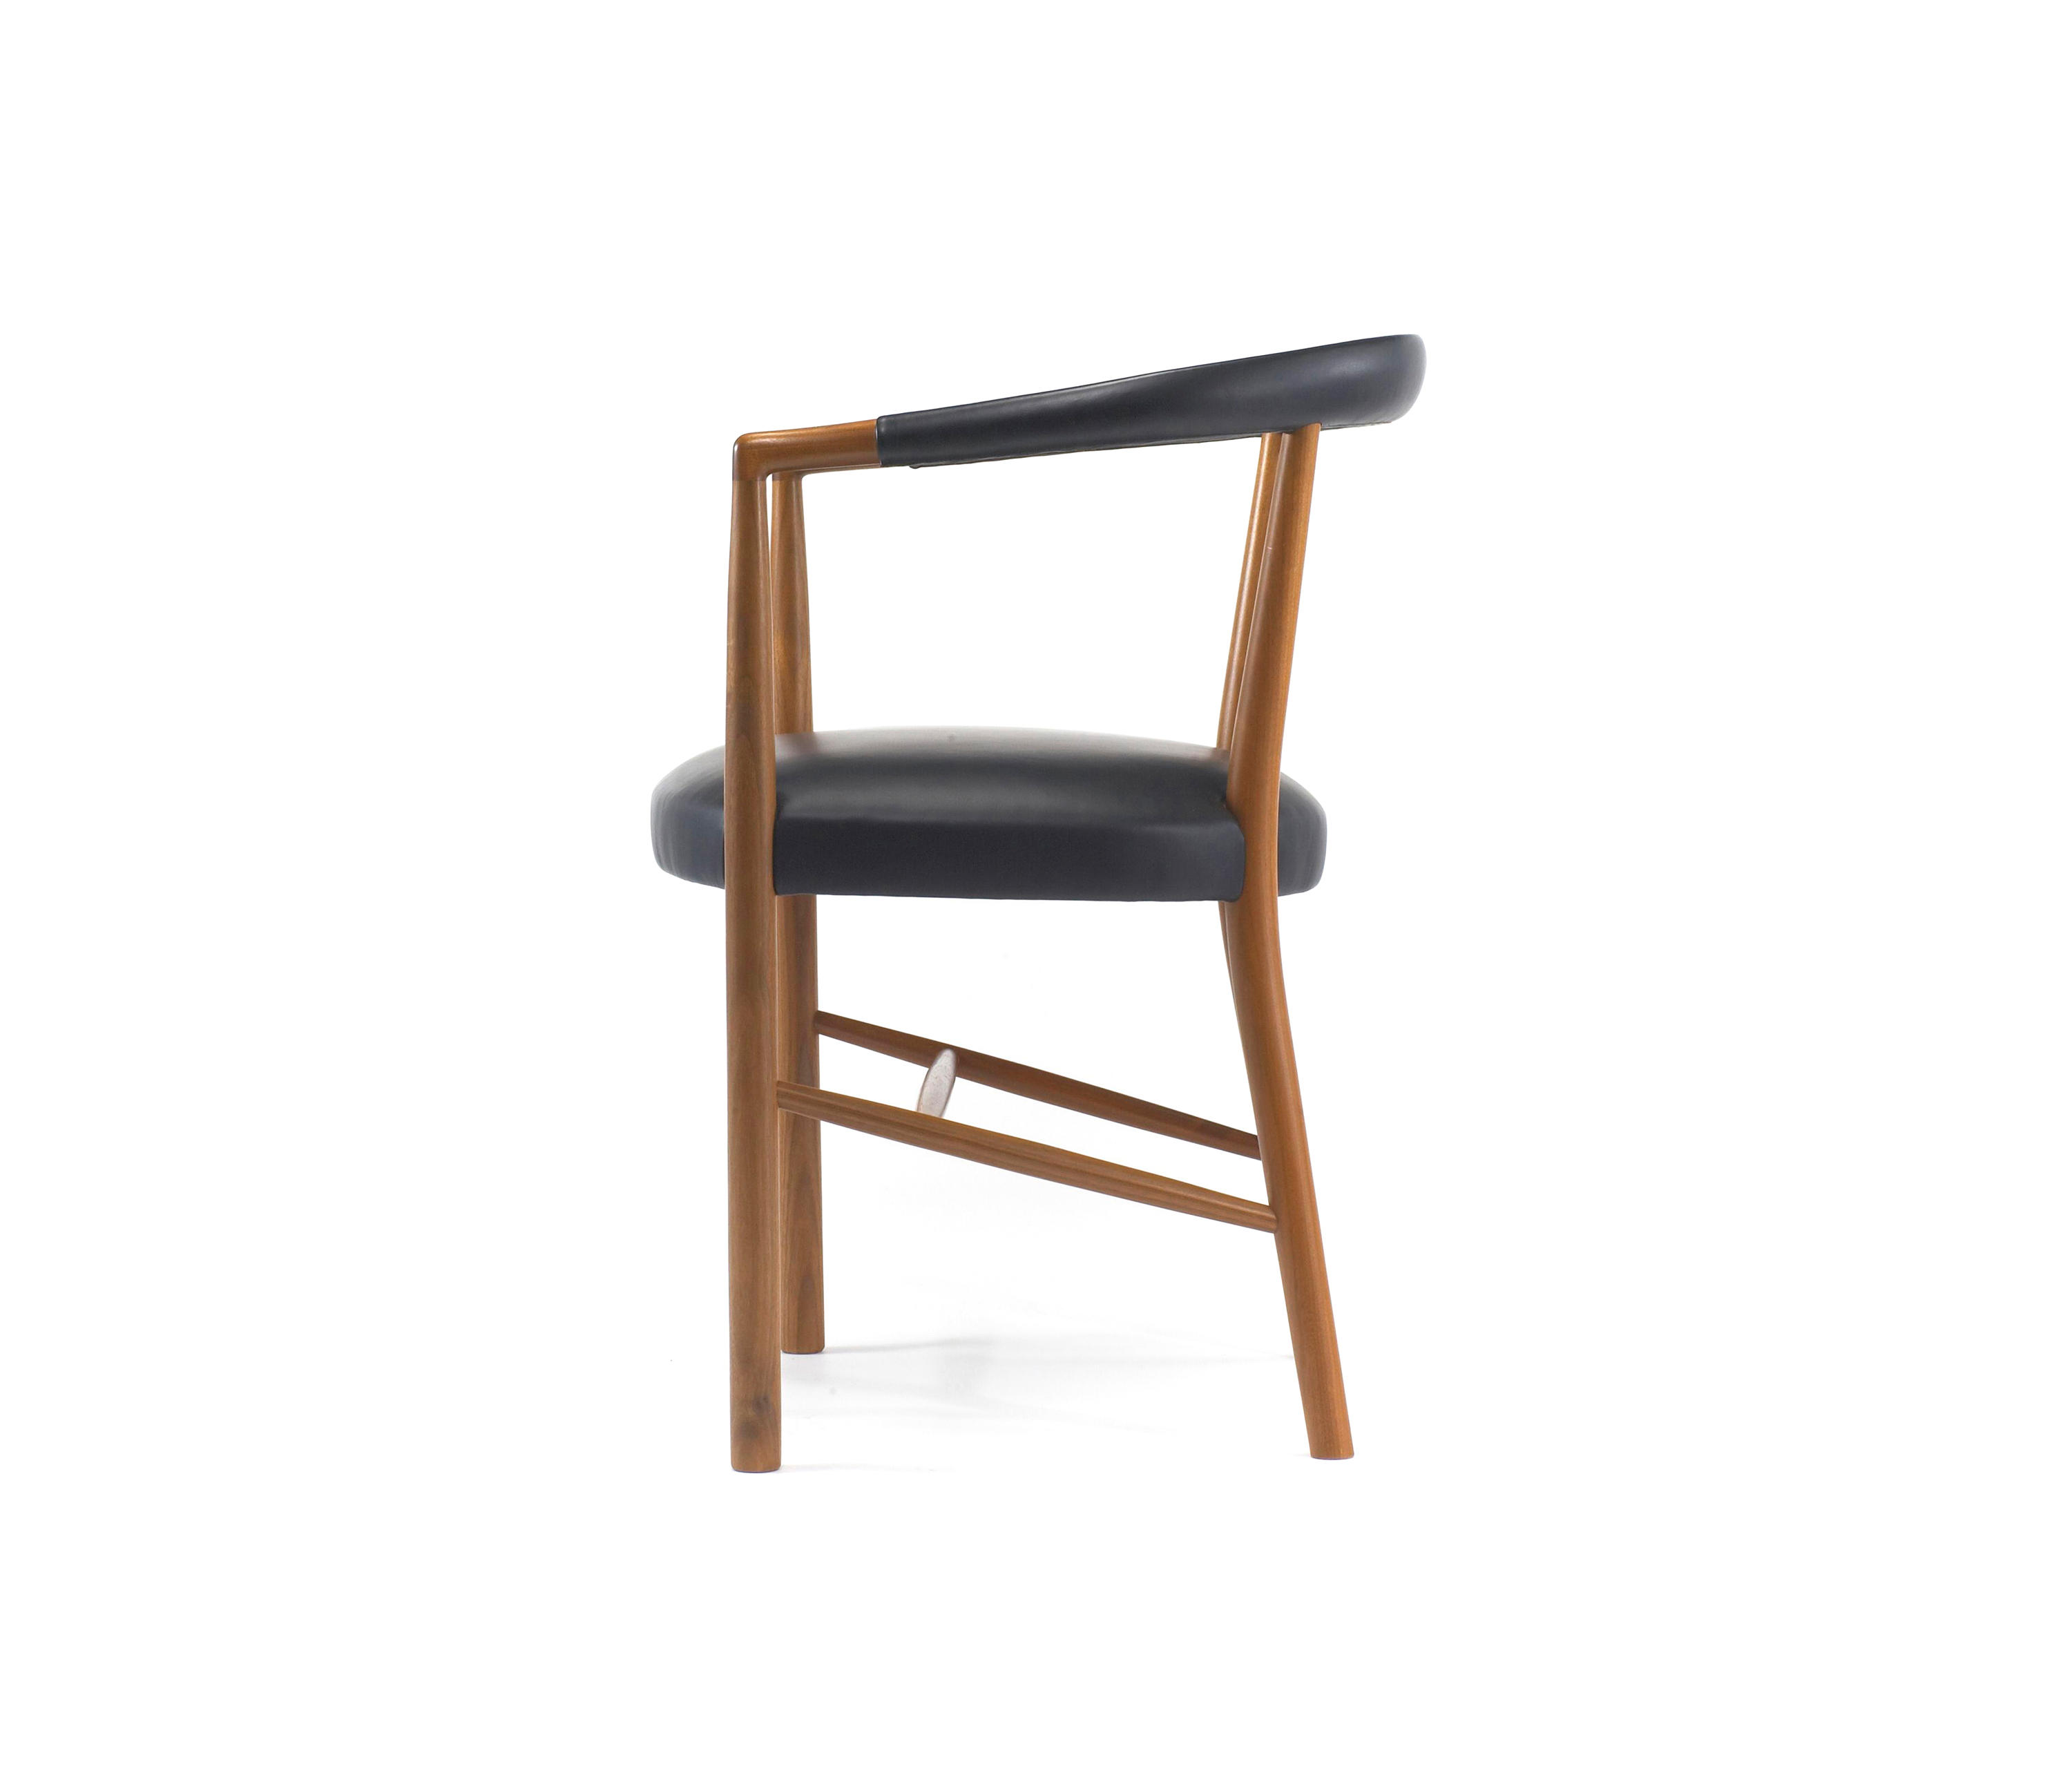 JK03 CHAIR  Chairs from Kitani Japan Inc  Architonic